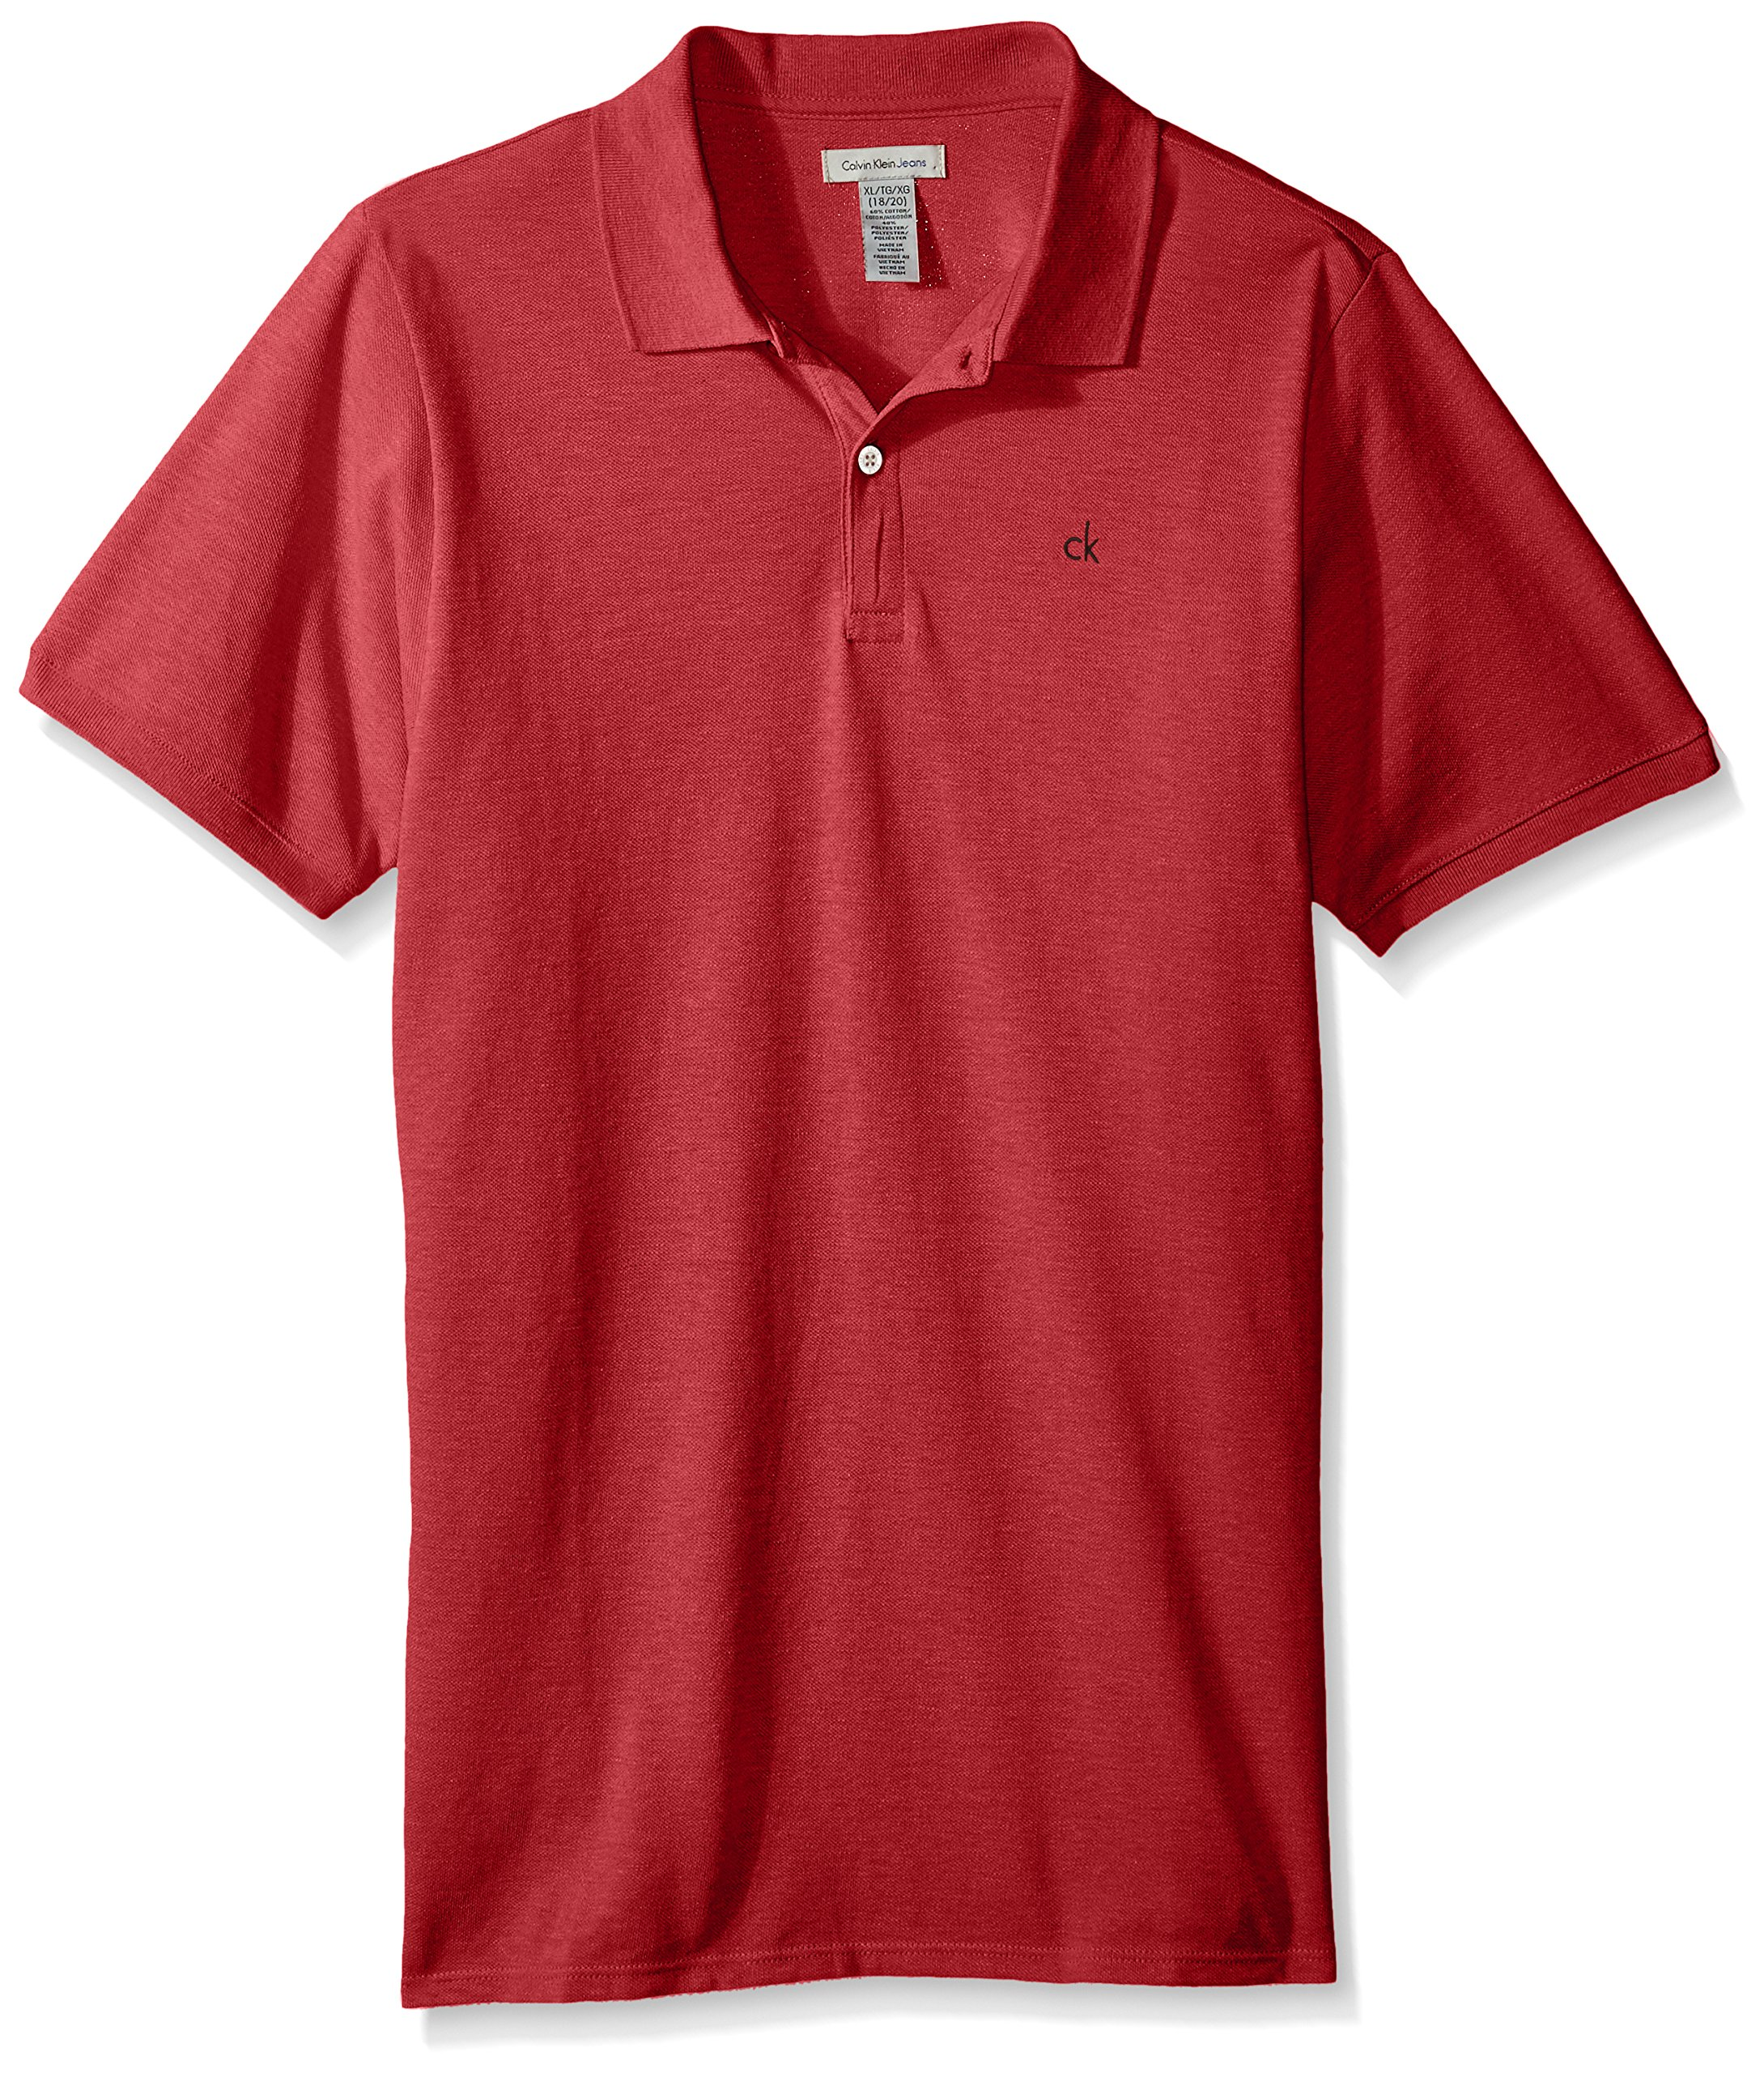 Calvin Klein Boys' Big Solid Pique Polo, DKREDHT, Medium (10/12)